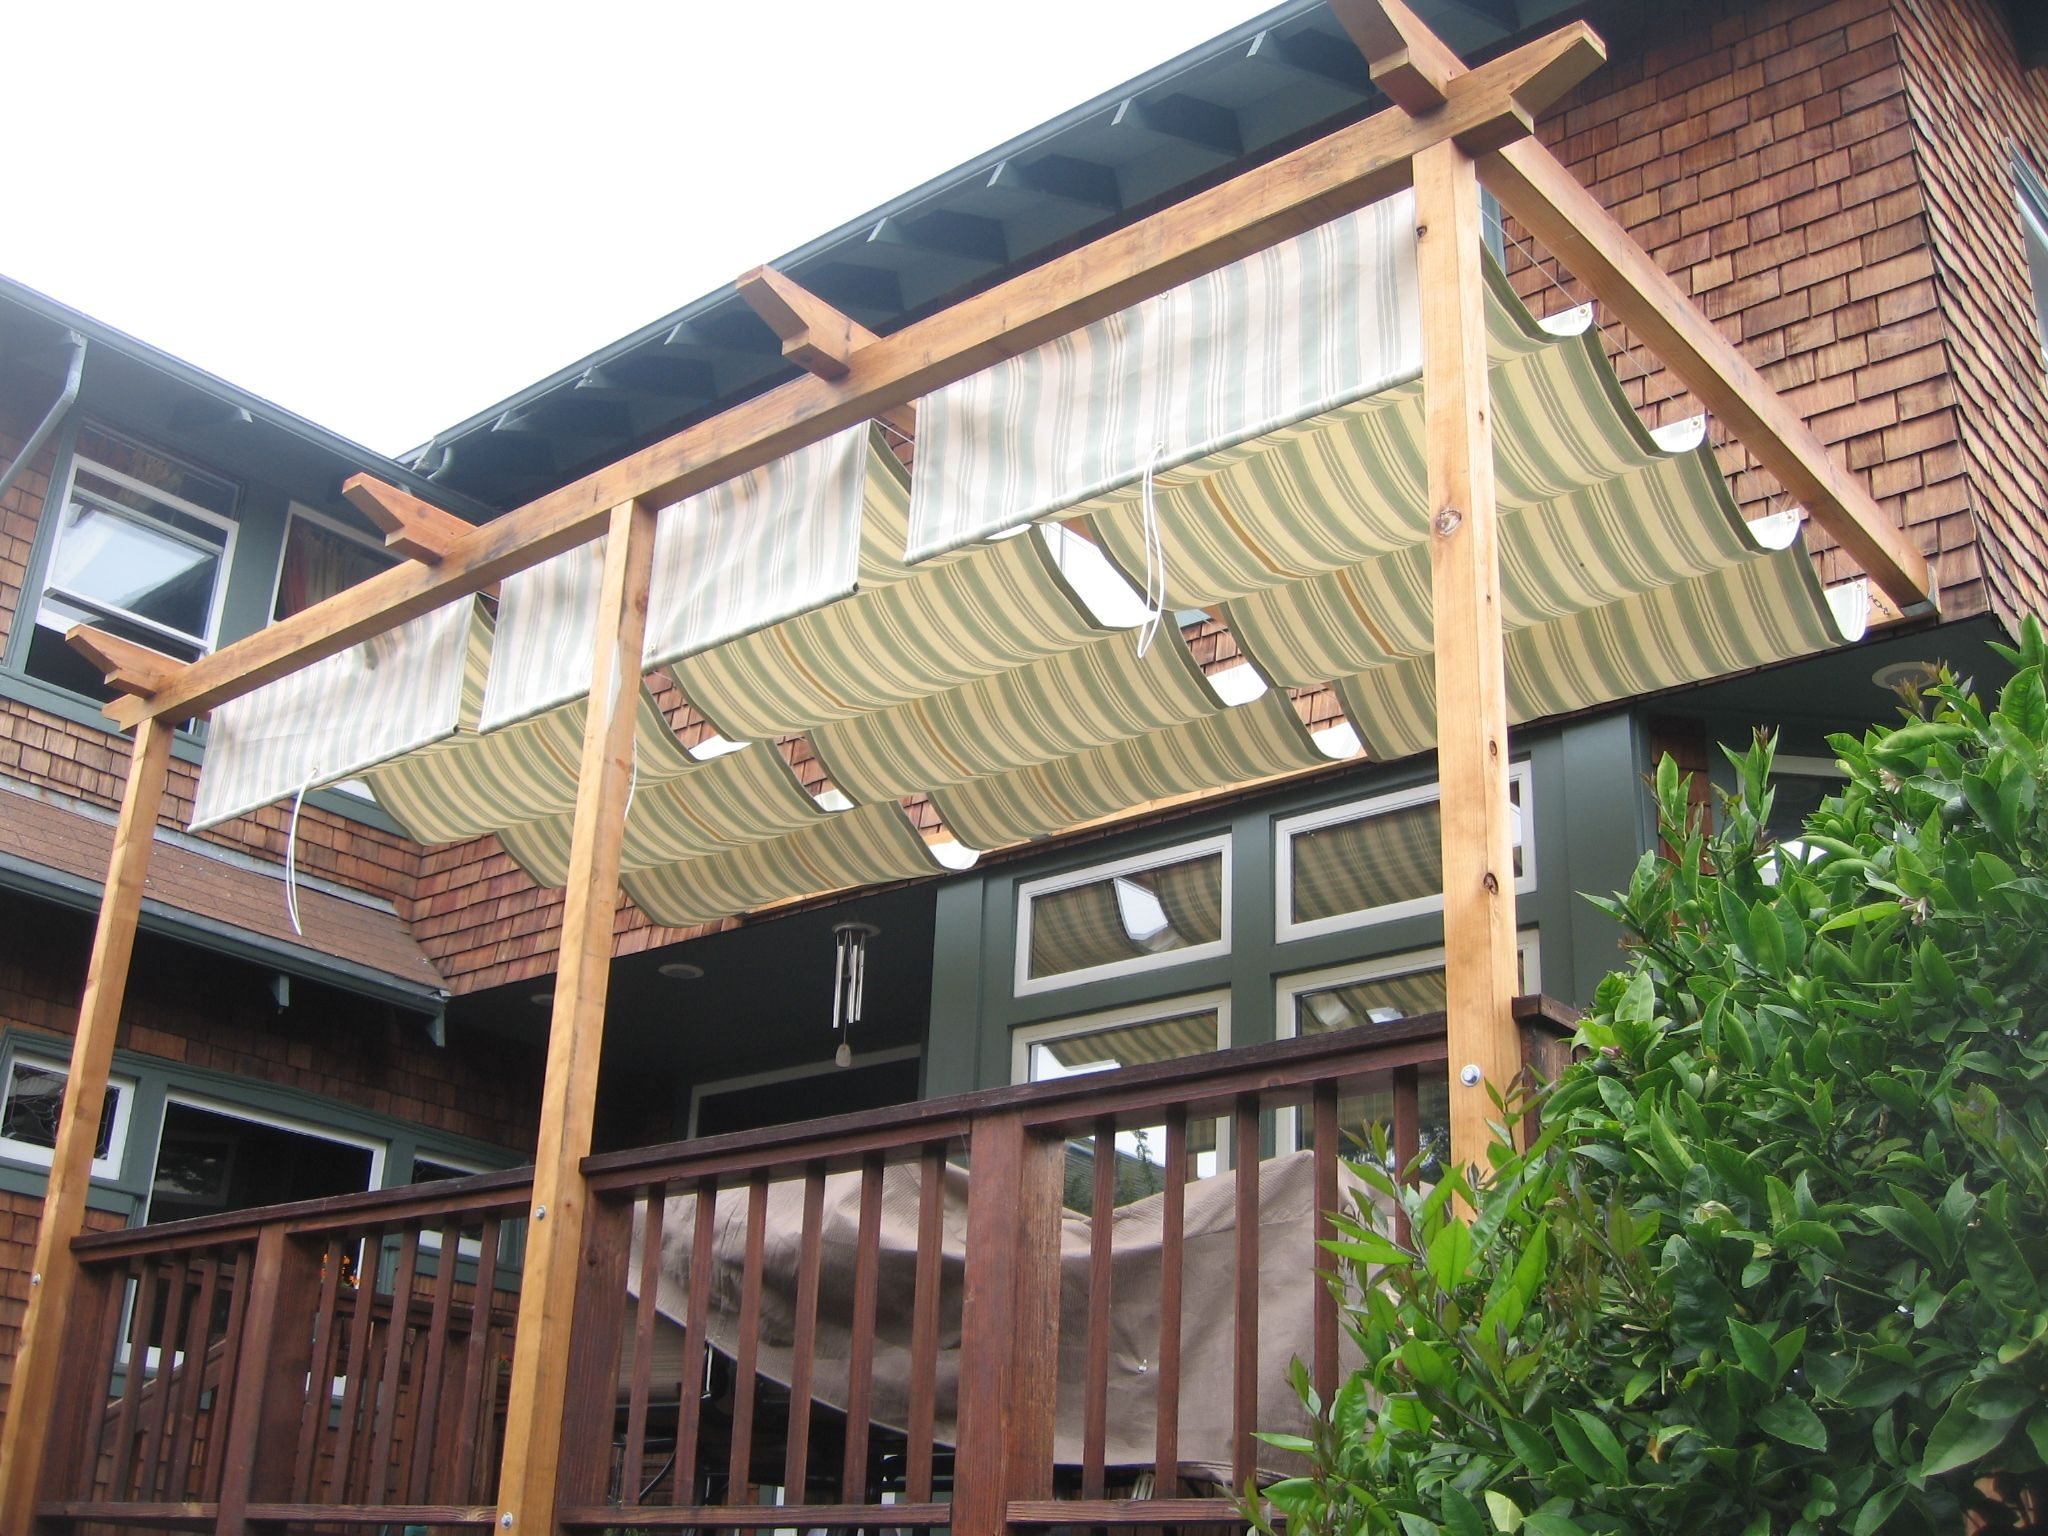 Shade structures for patios acme sunshades retractable for Retractable patio awning canopy